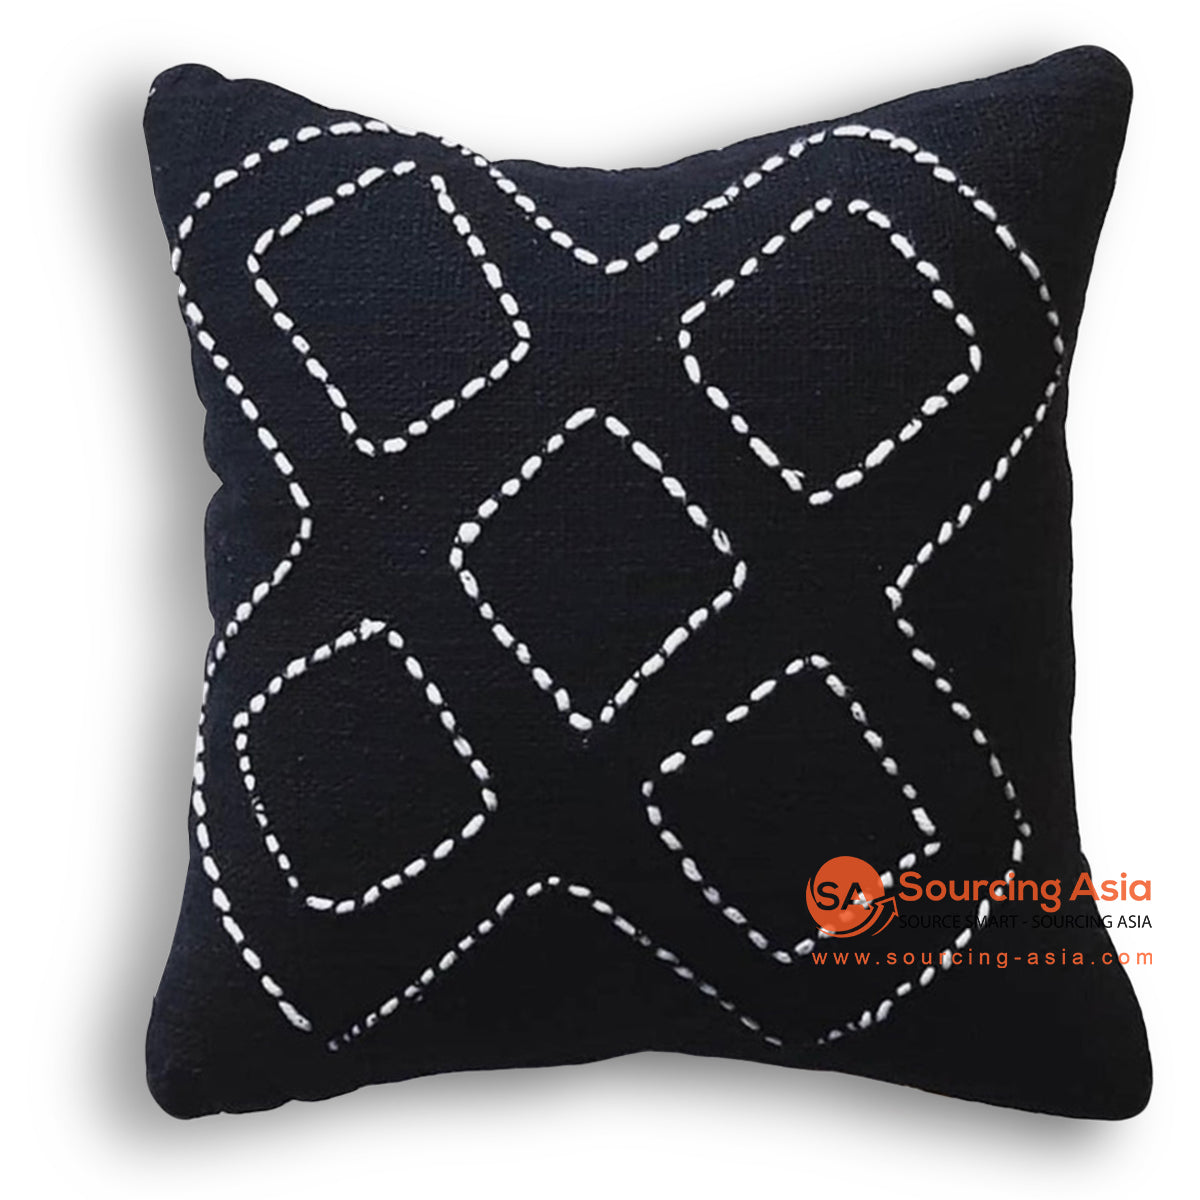 HIP008 HAND STITCHED COVER PILLOW 50 X 50 CM